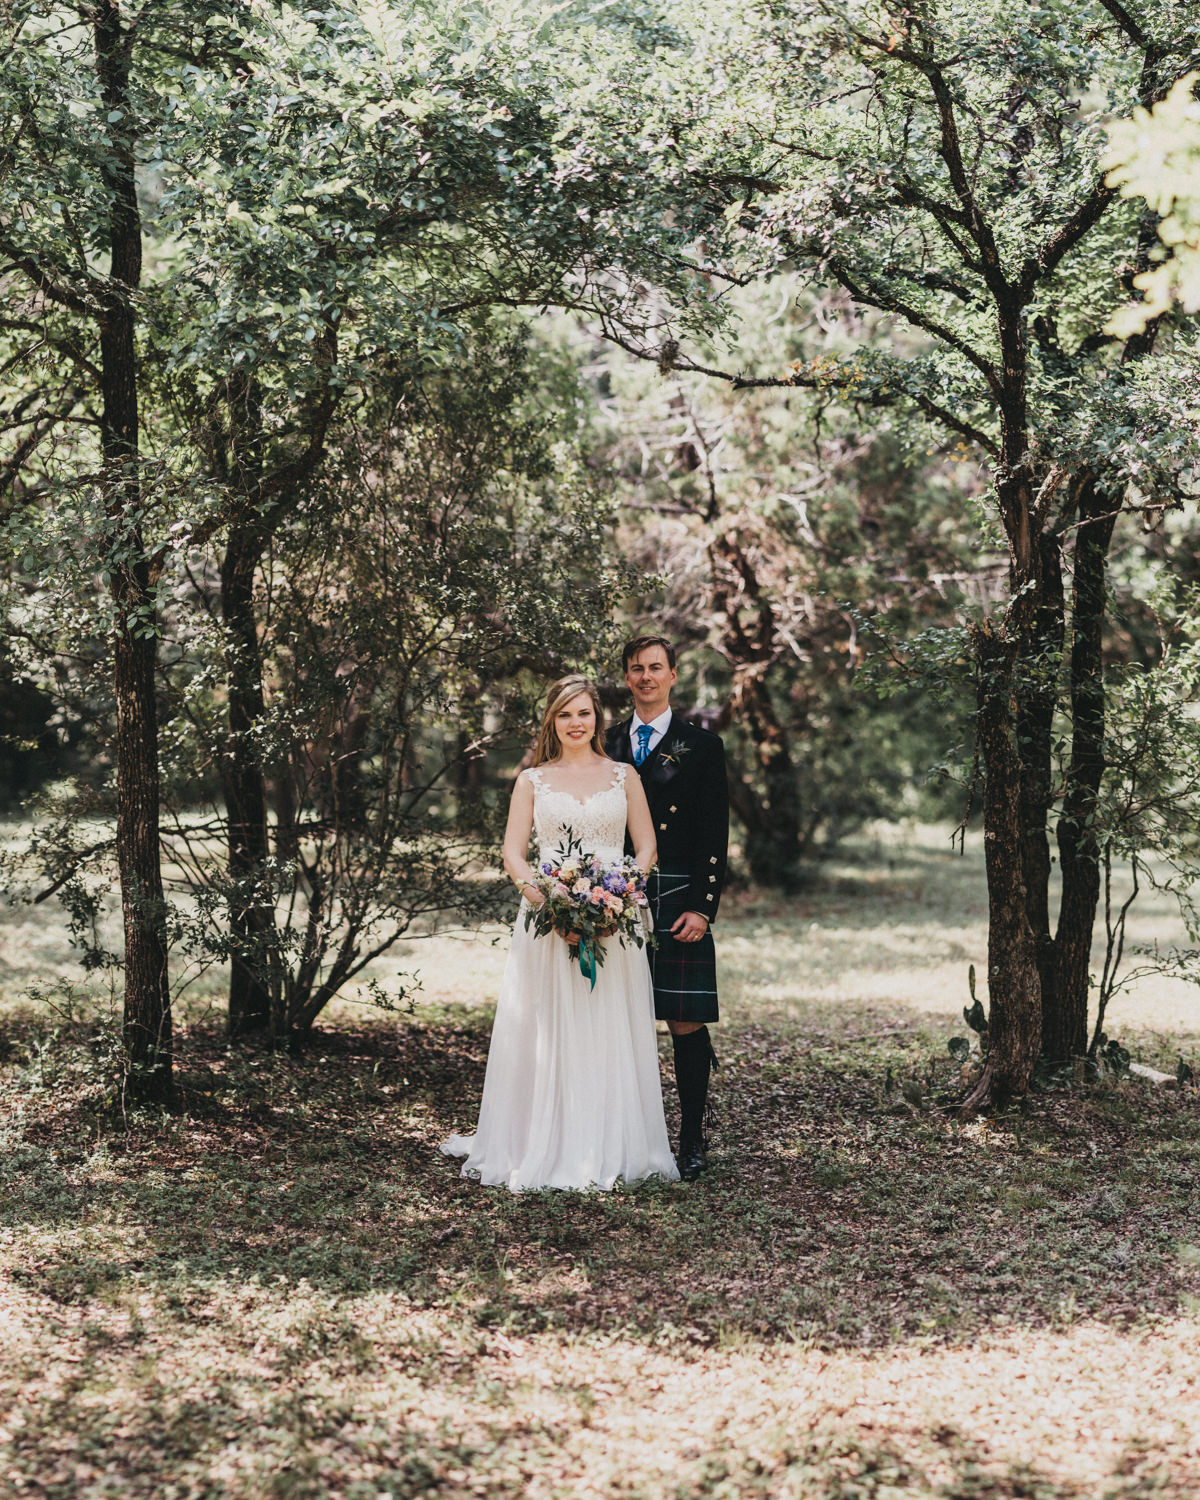 Wedding Portraits in Austin, TX